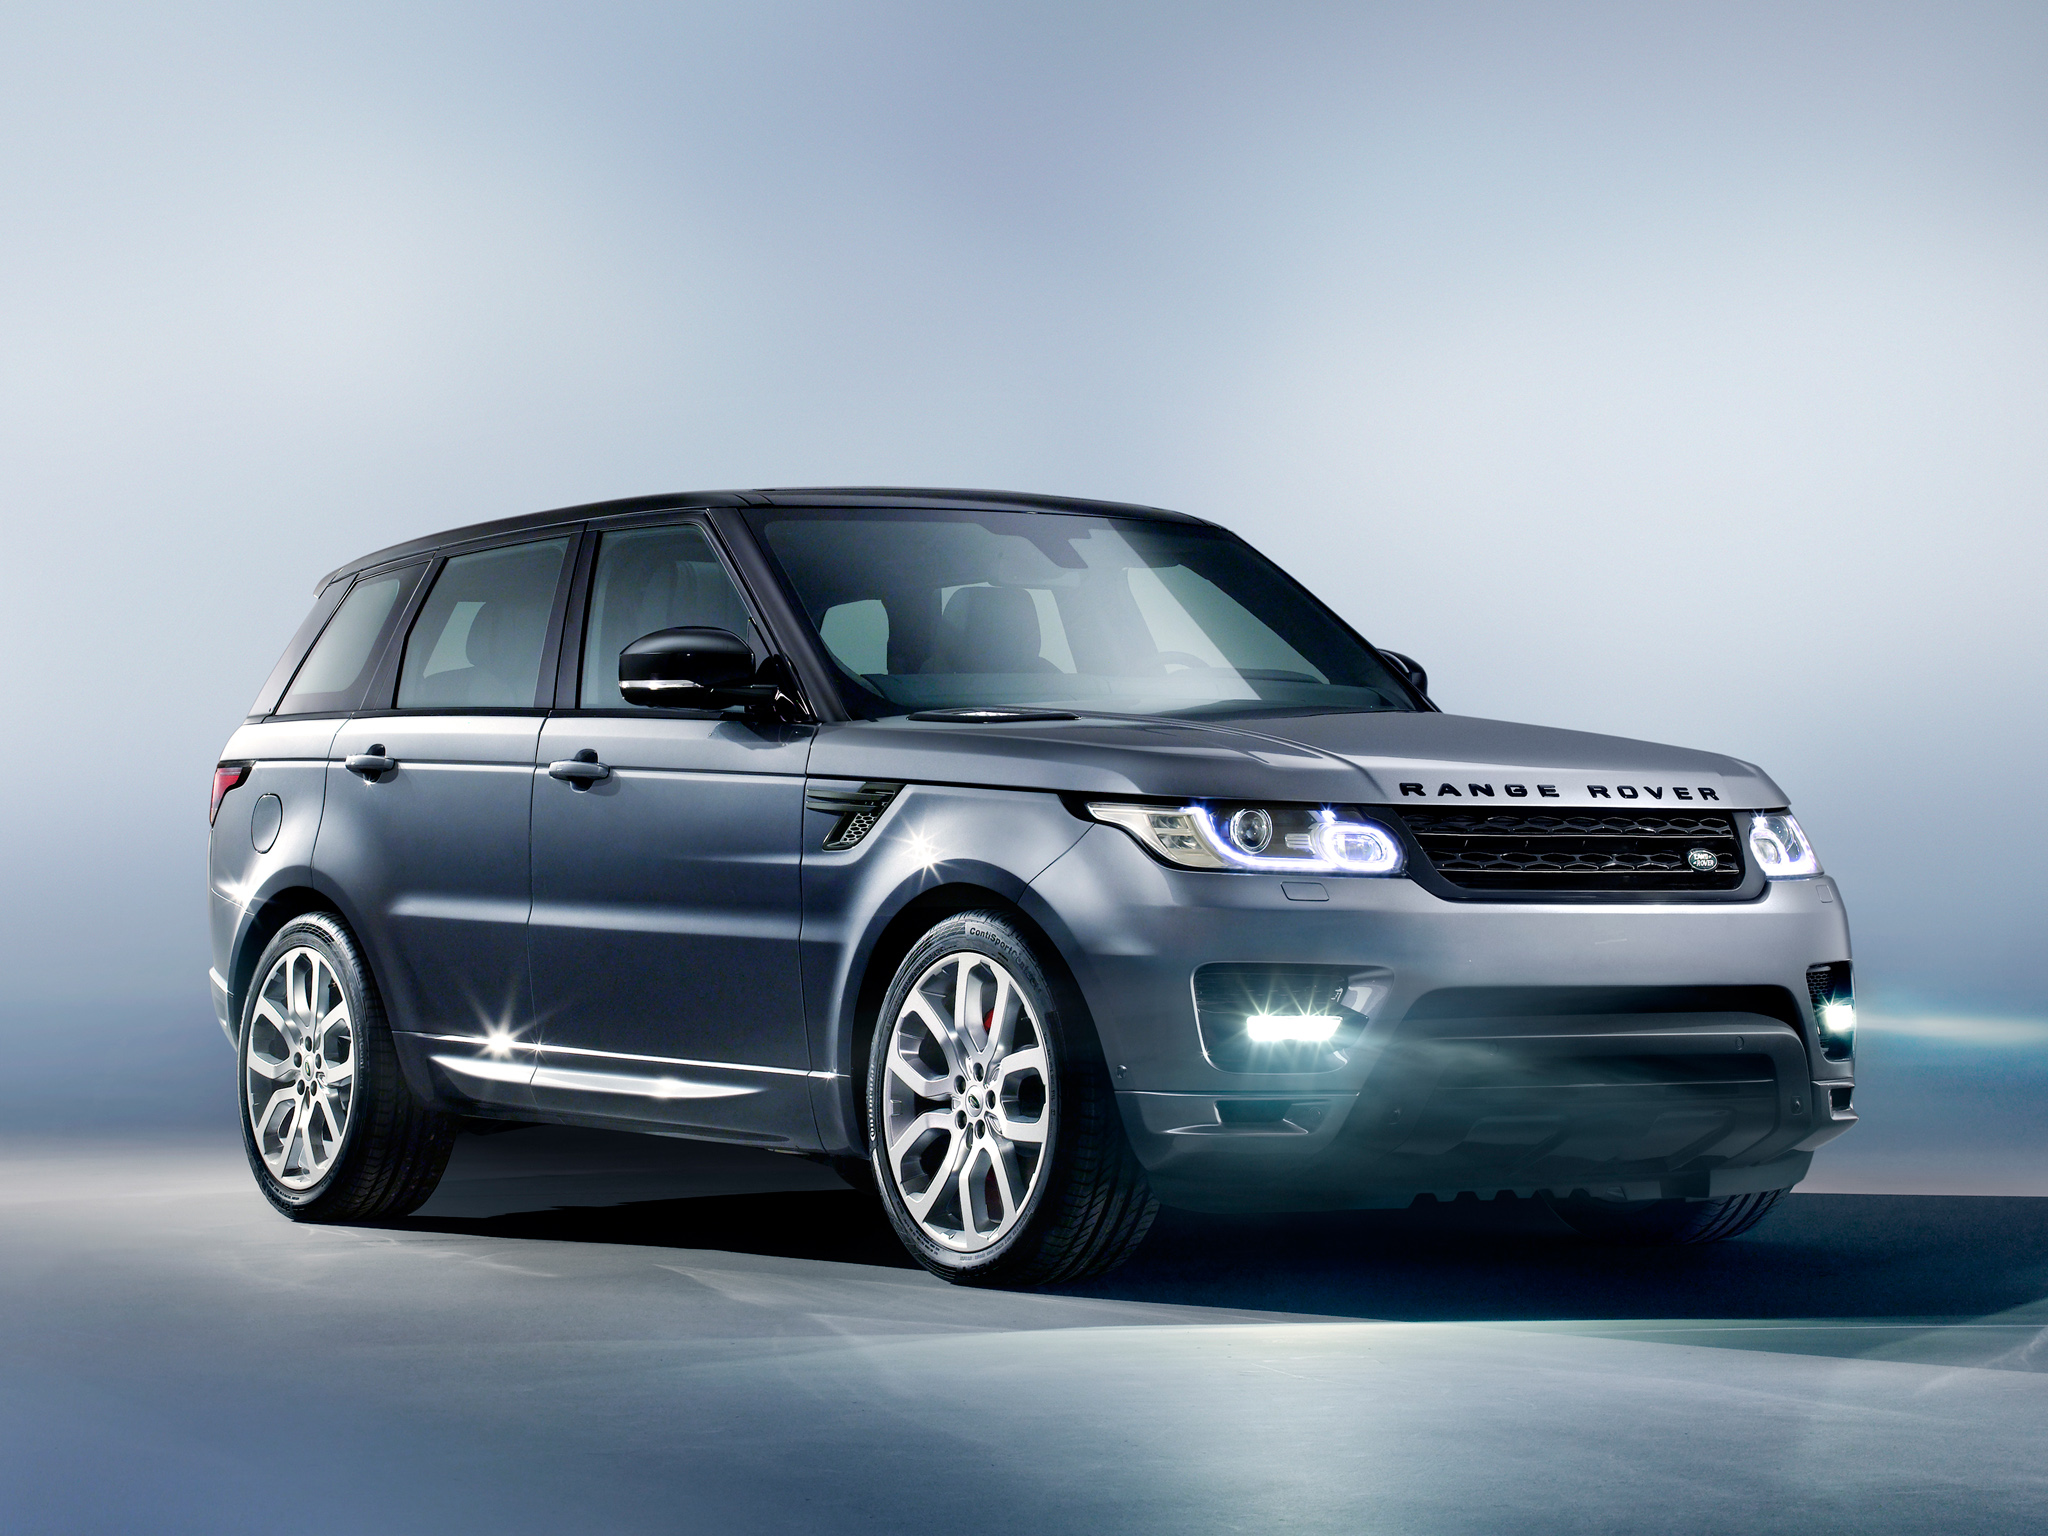 Land Rover Range Rover 3.0 2013 photo - 10